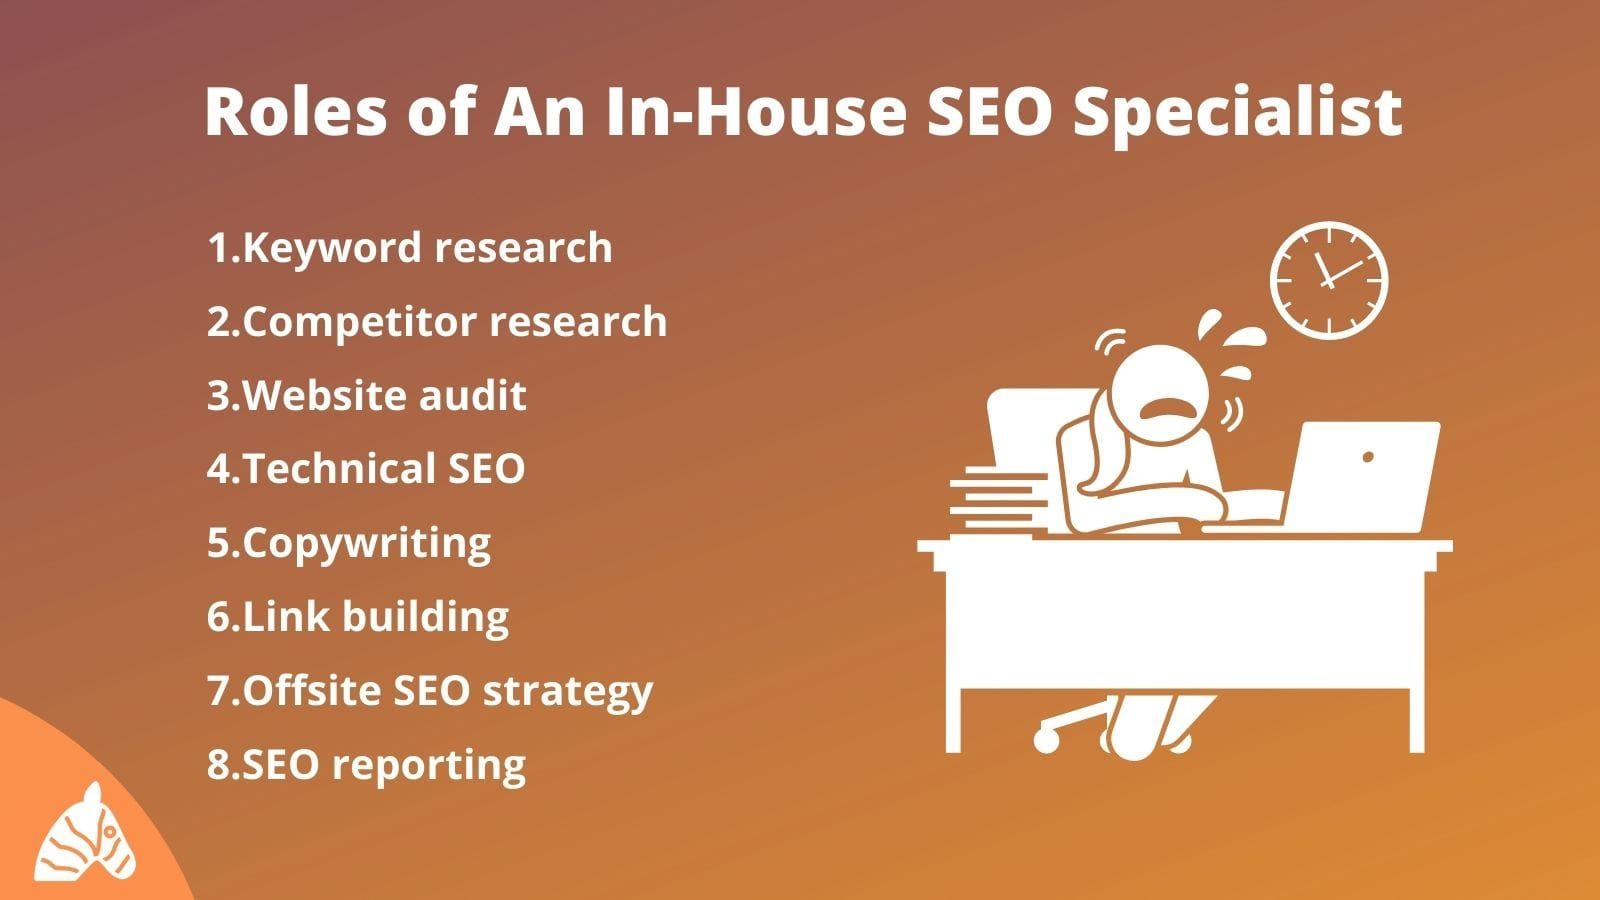 Roles of an in-house SEO specialist